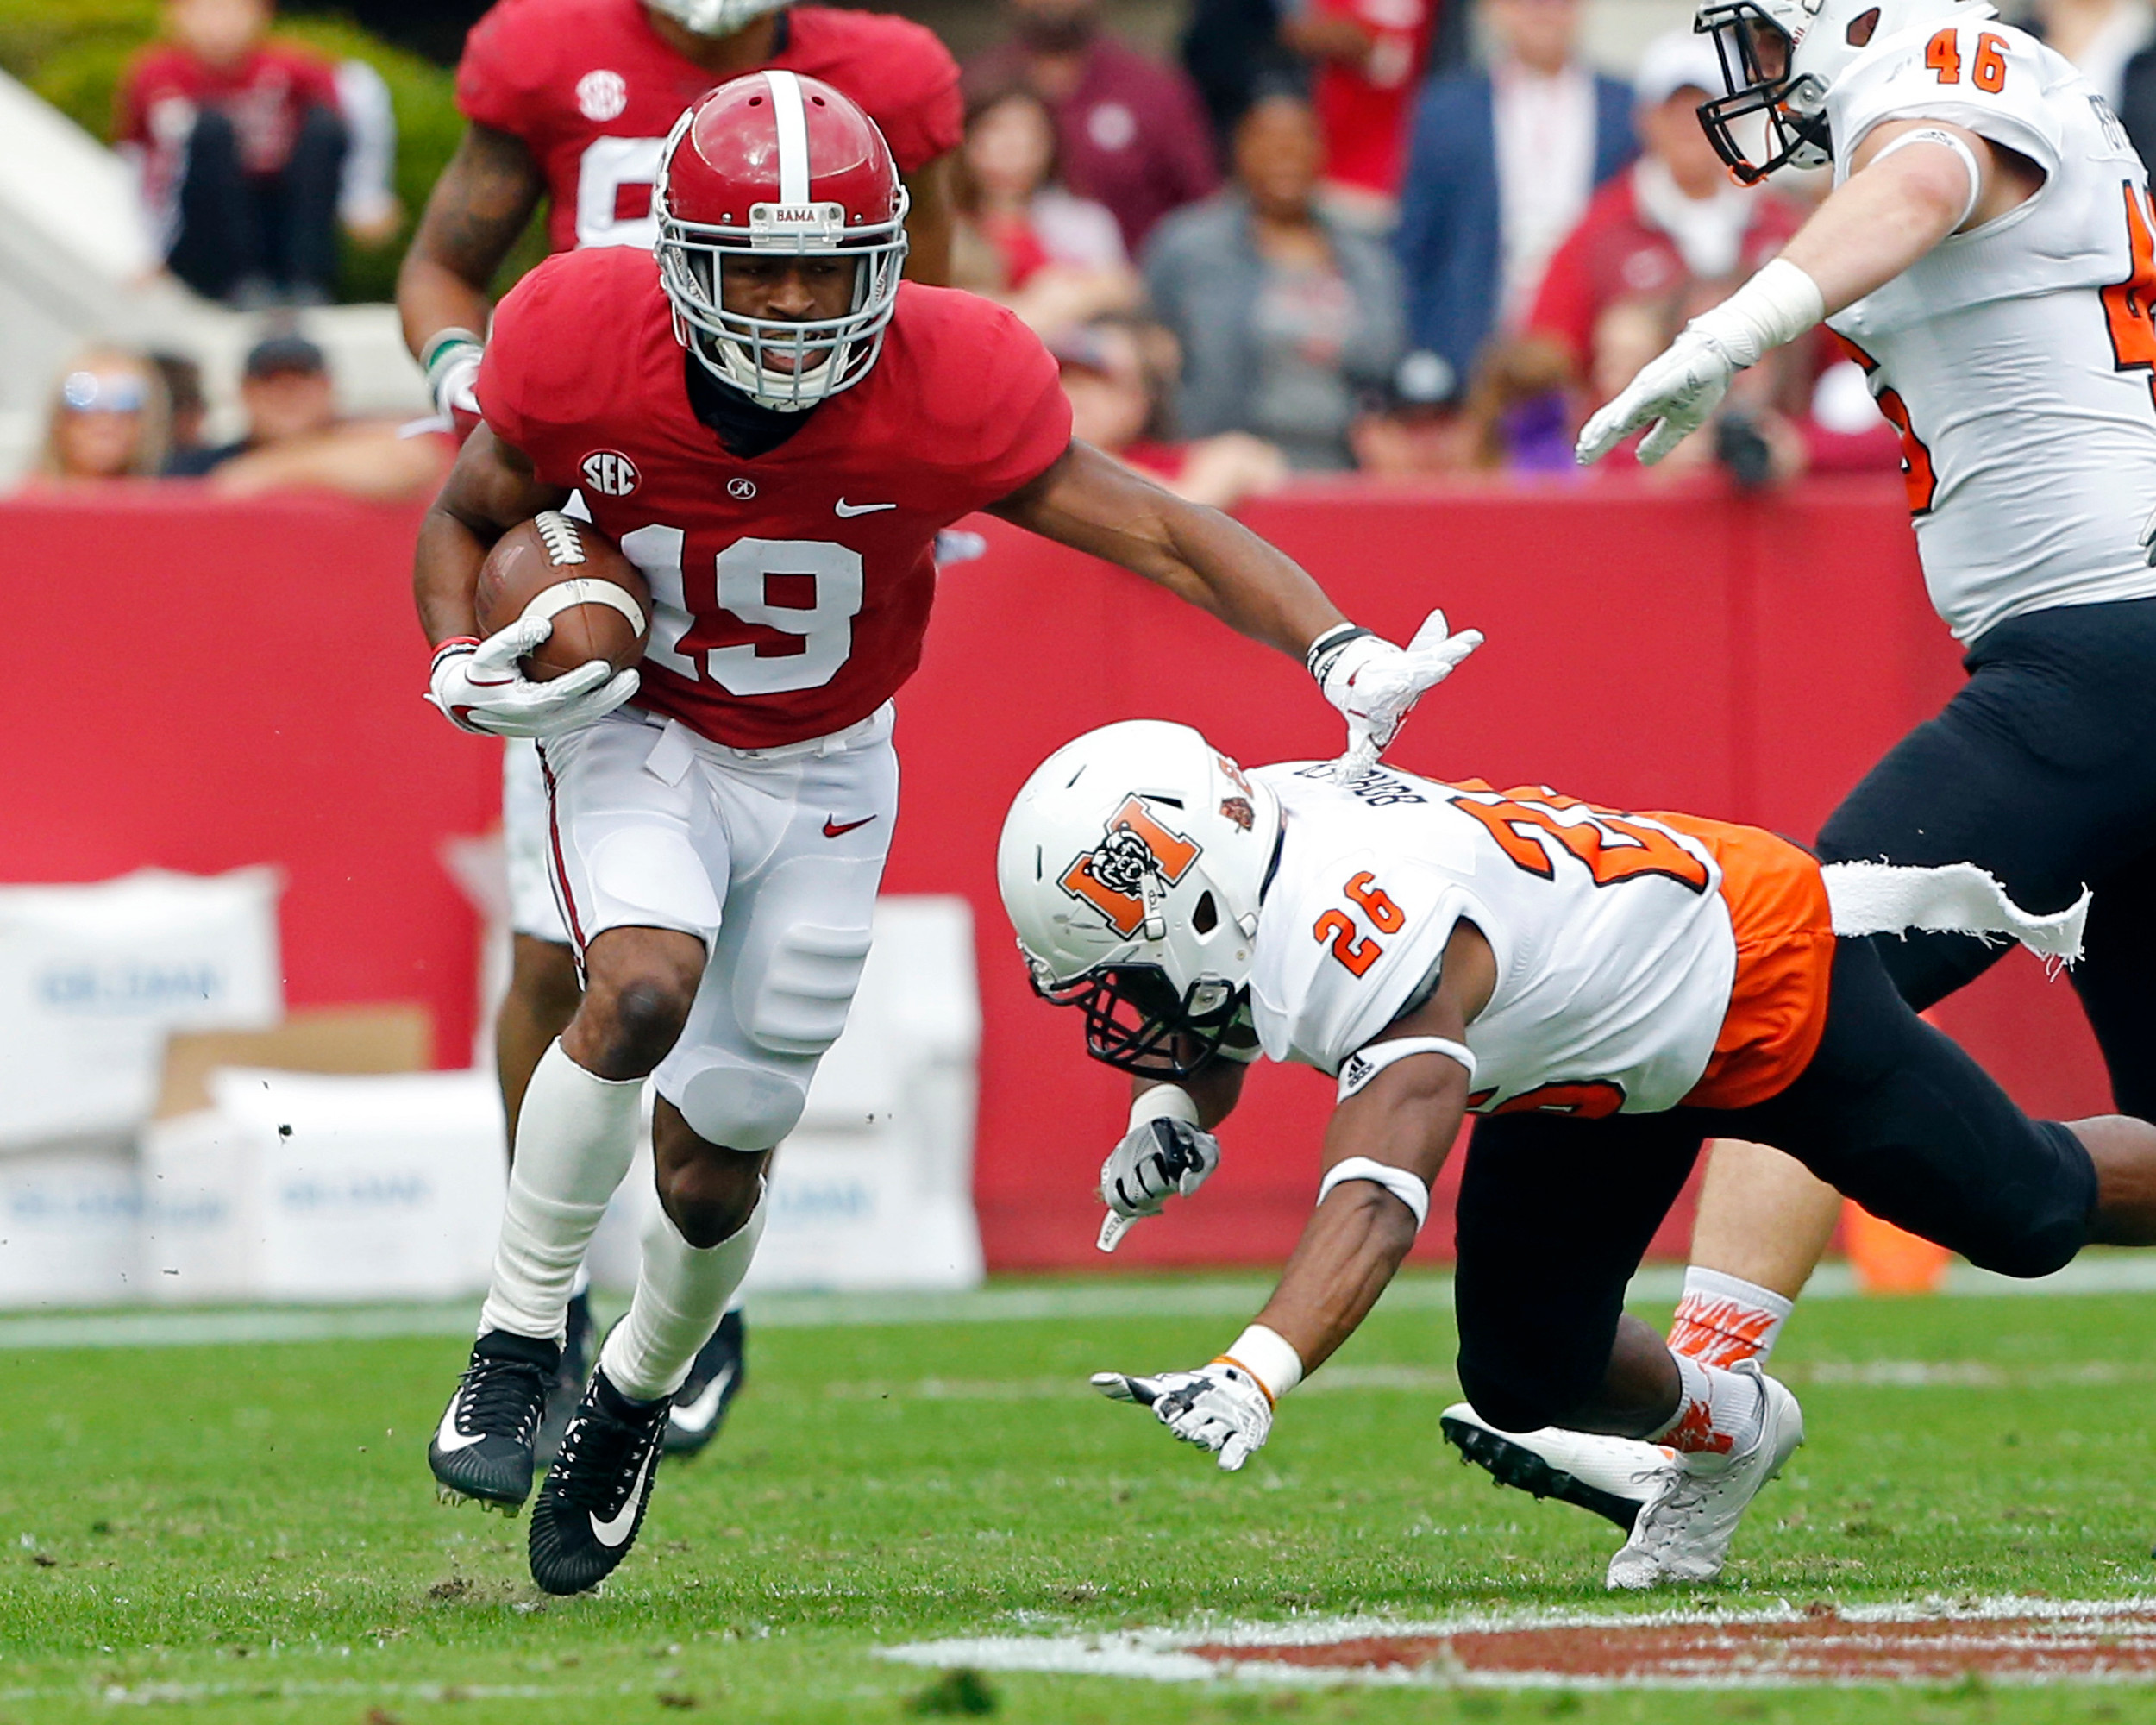 Alabama Crimson Tide wide receiver Xavian Marks (19) returns a punt during the 1st half of the game between the Mercer Bears and the University of Alabama Crimson Tide at Bryant-Denny Stadium in Tuscaloosa, Al on 11/18/2017.